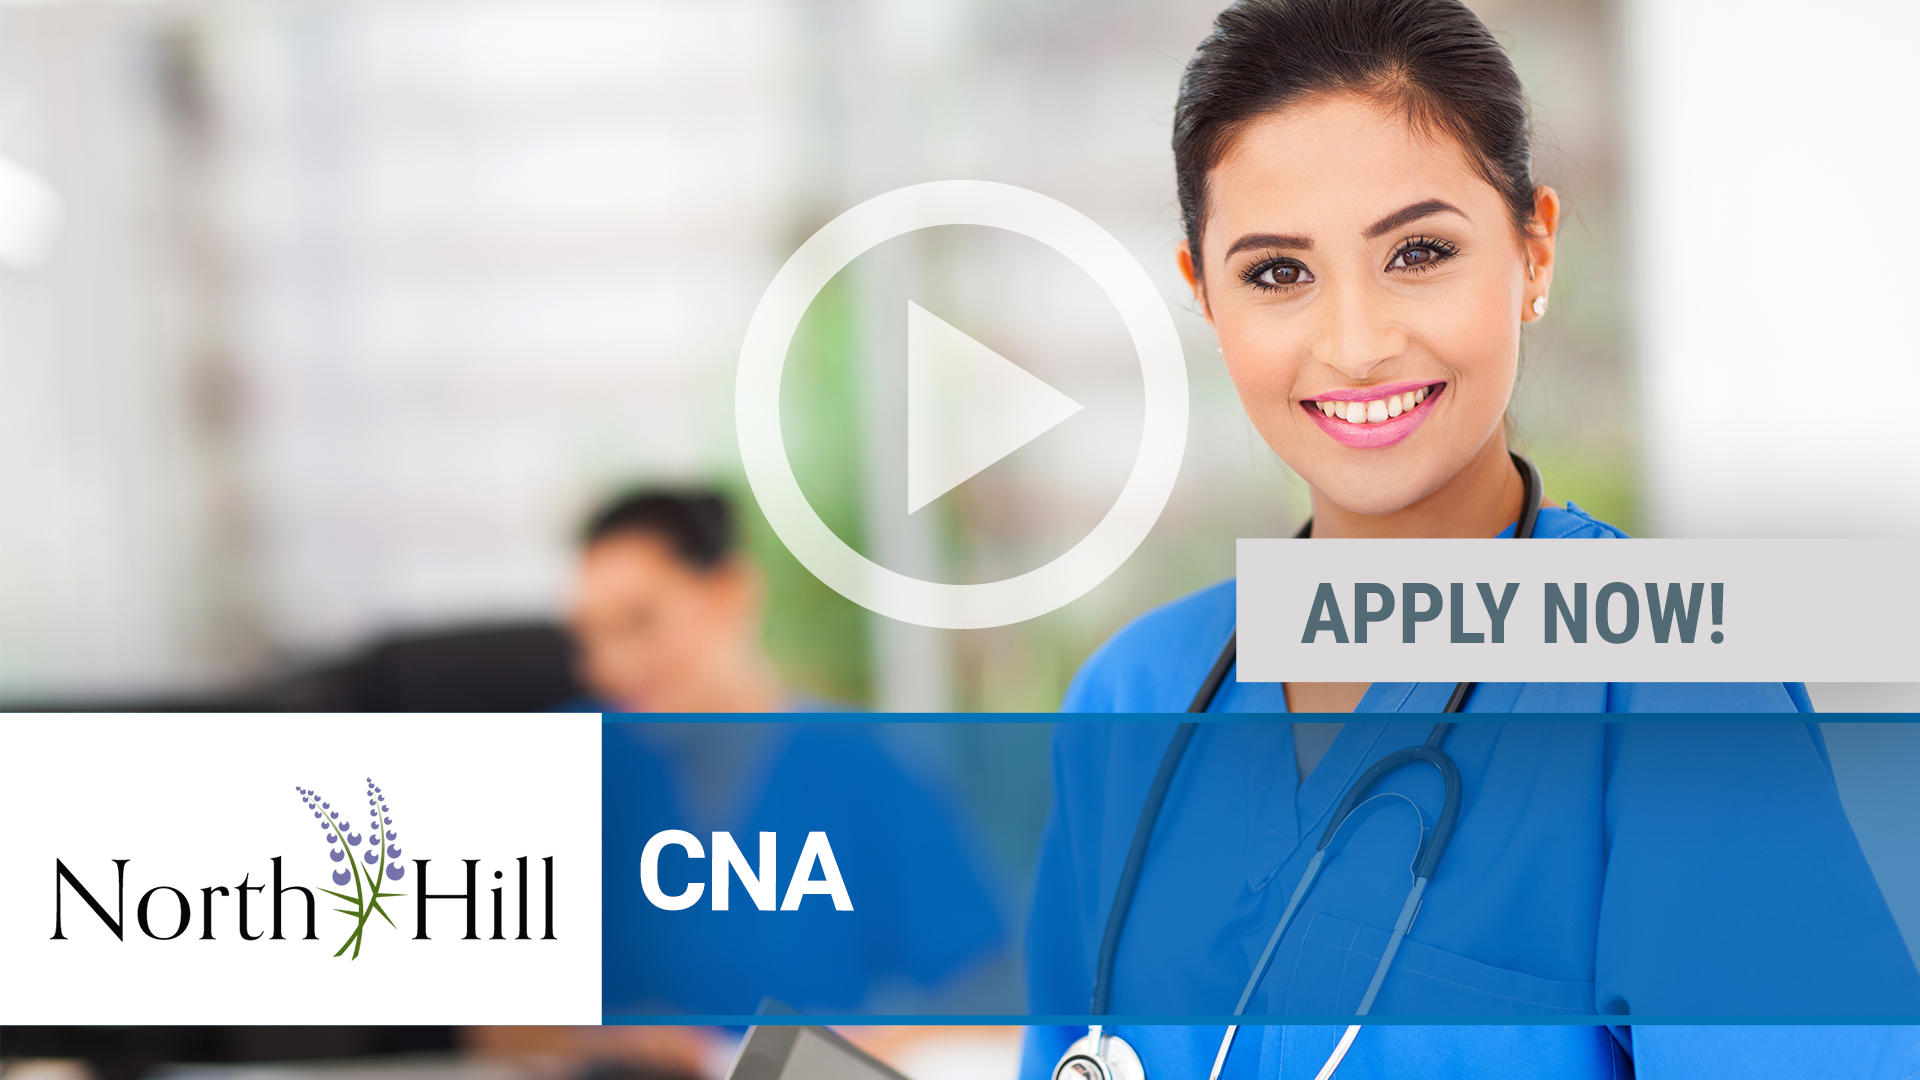 Watch our careers video for available job opening CNA in Needham, MA